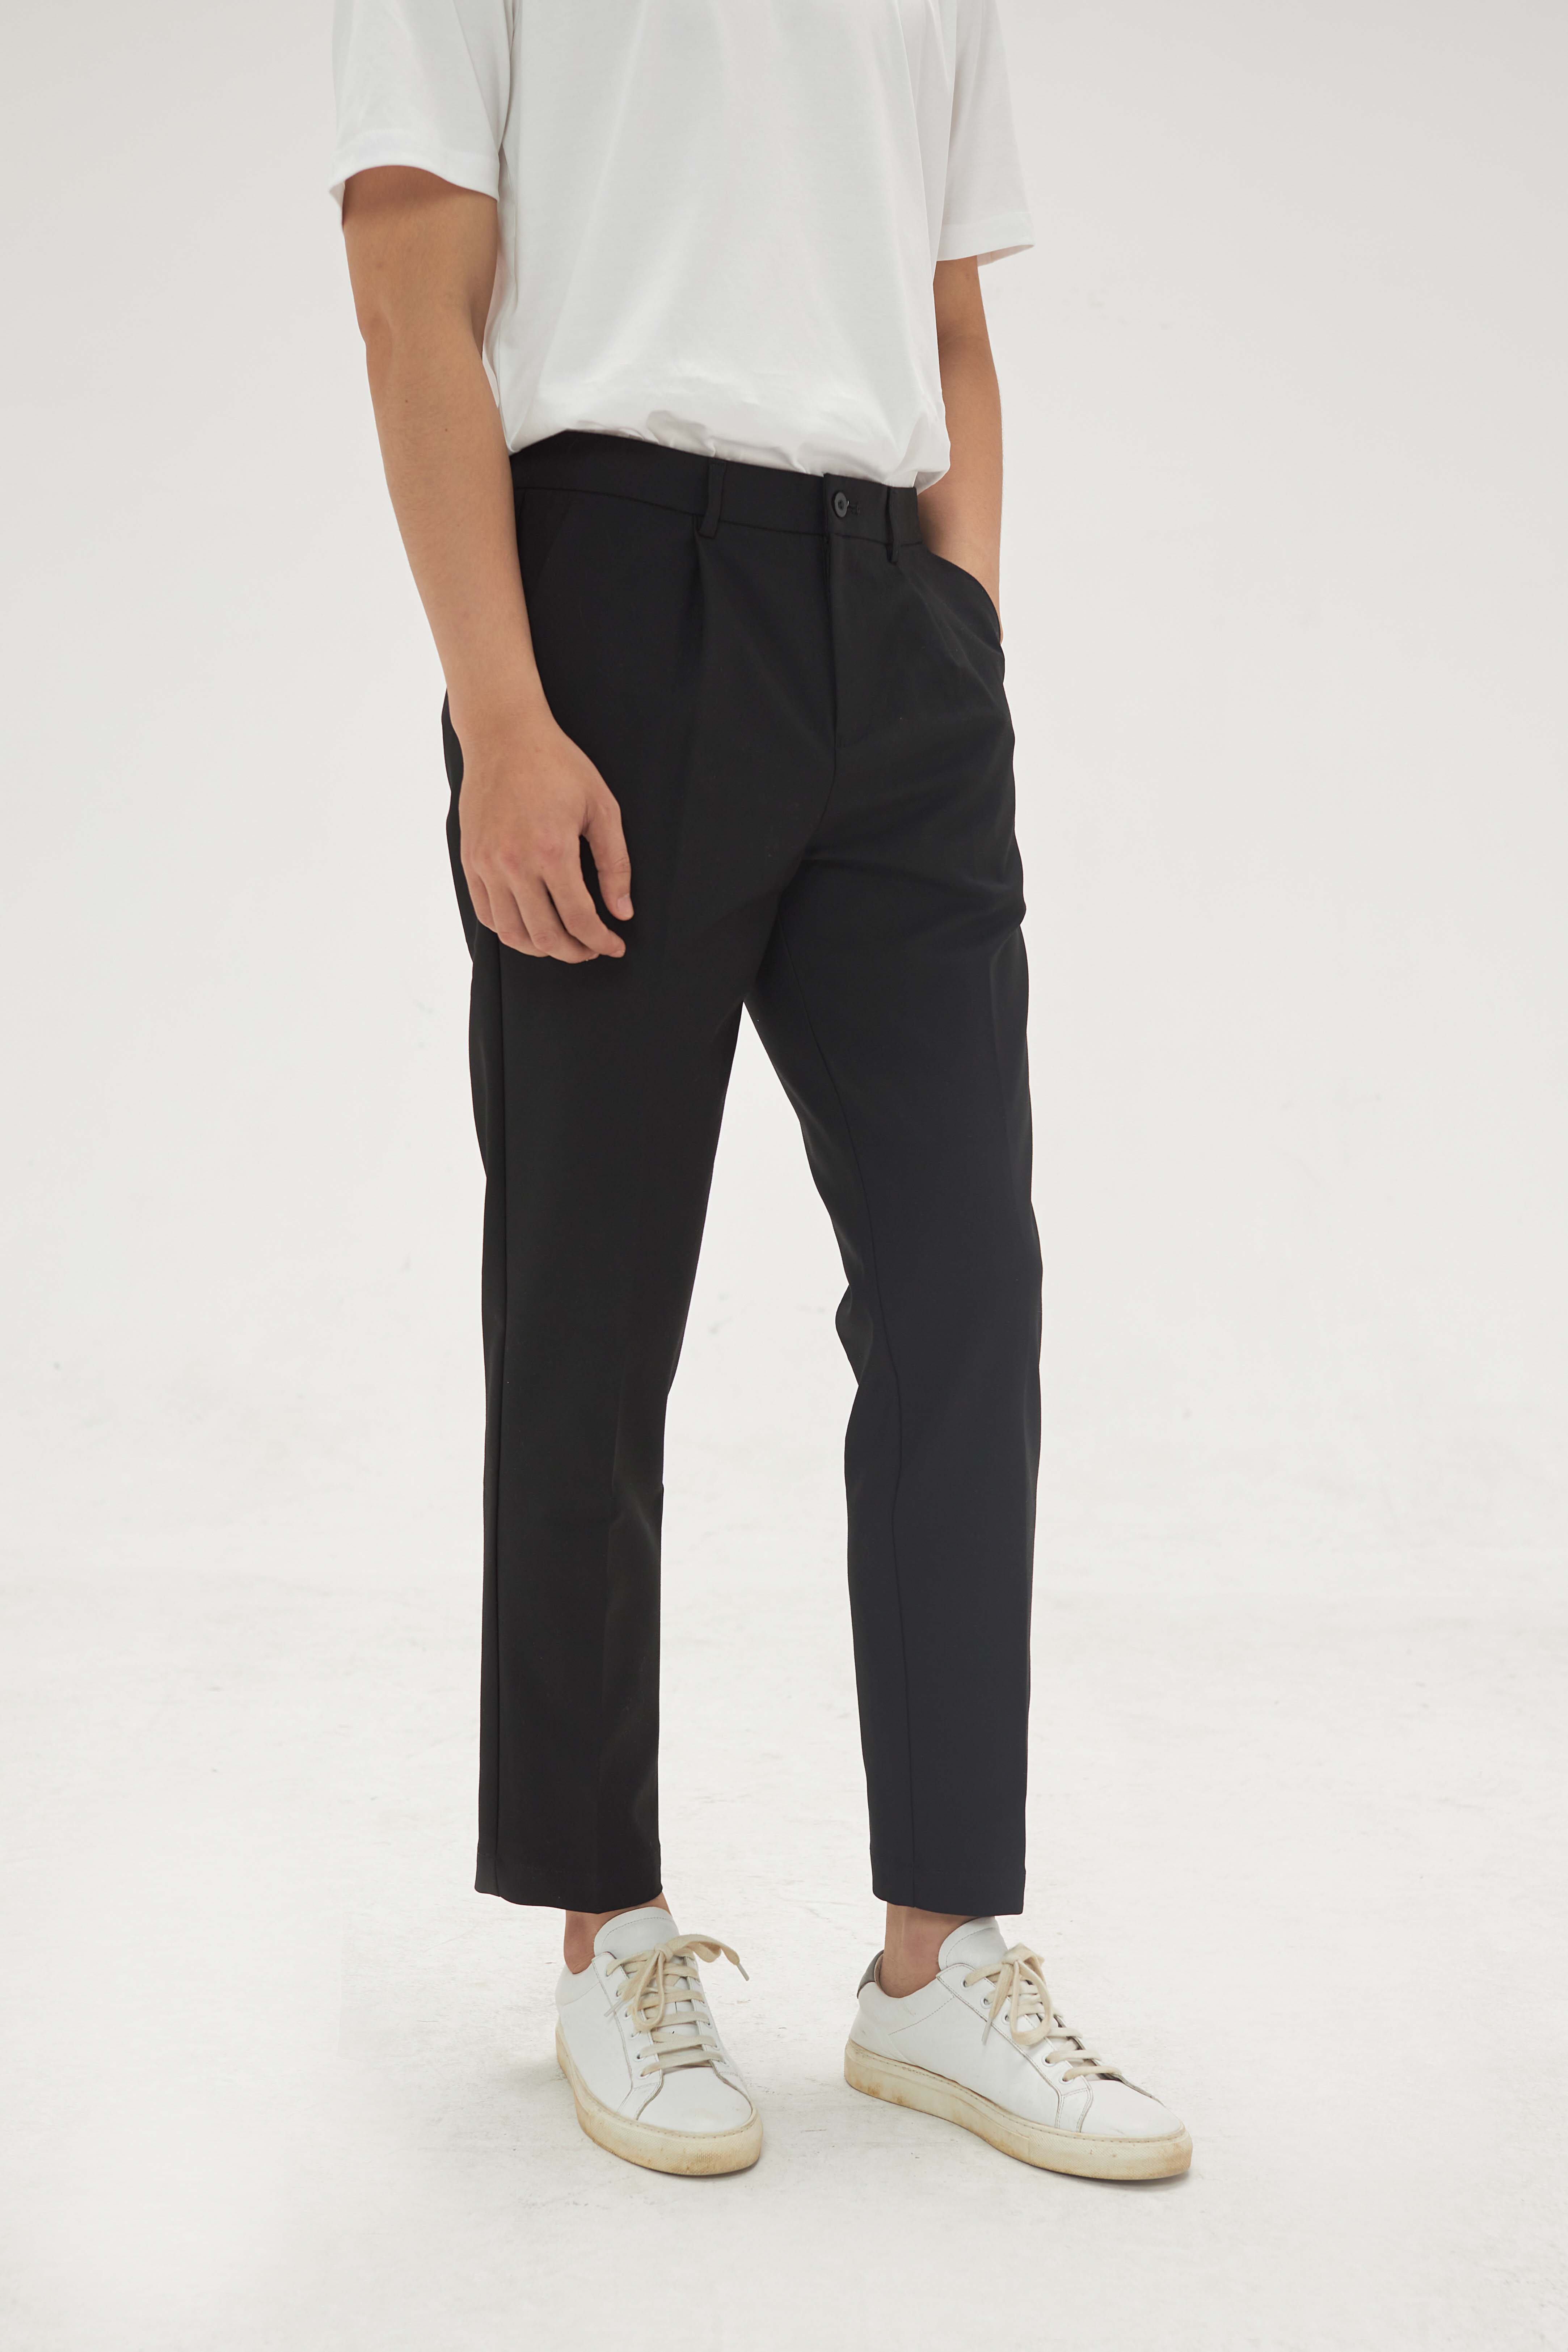 Look Oliver Pant